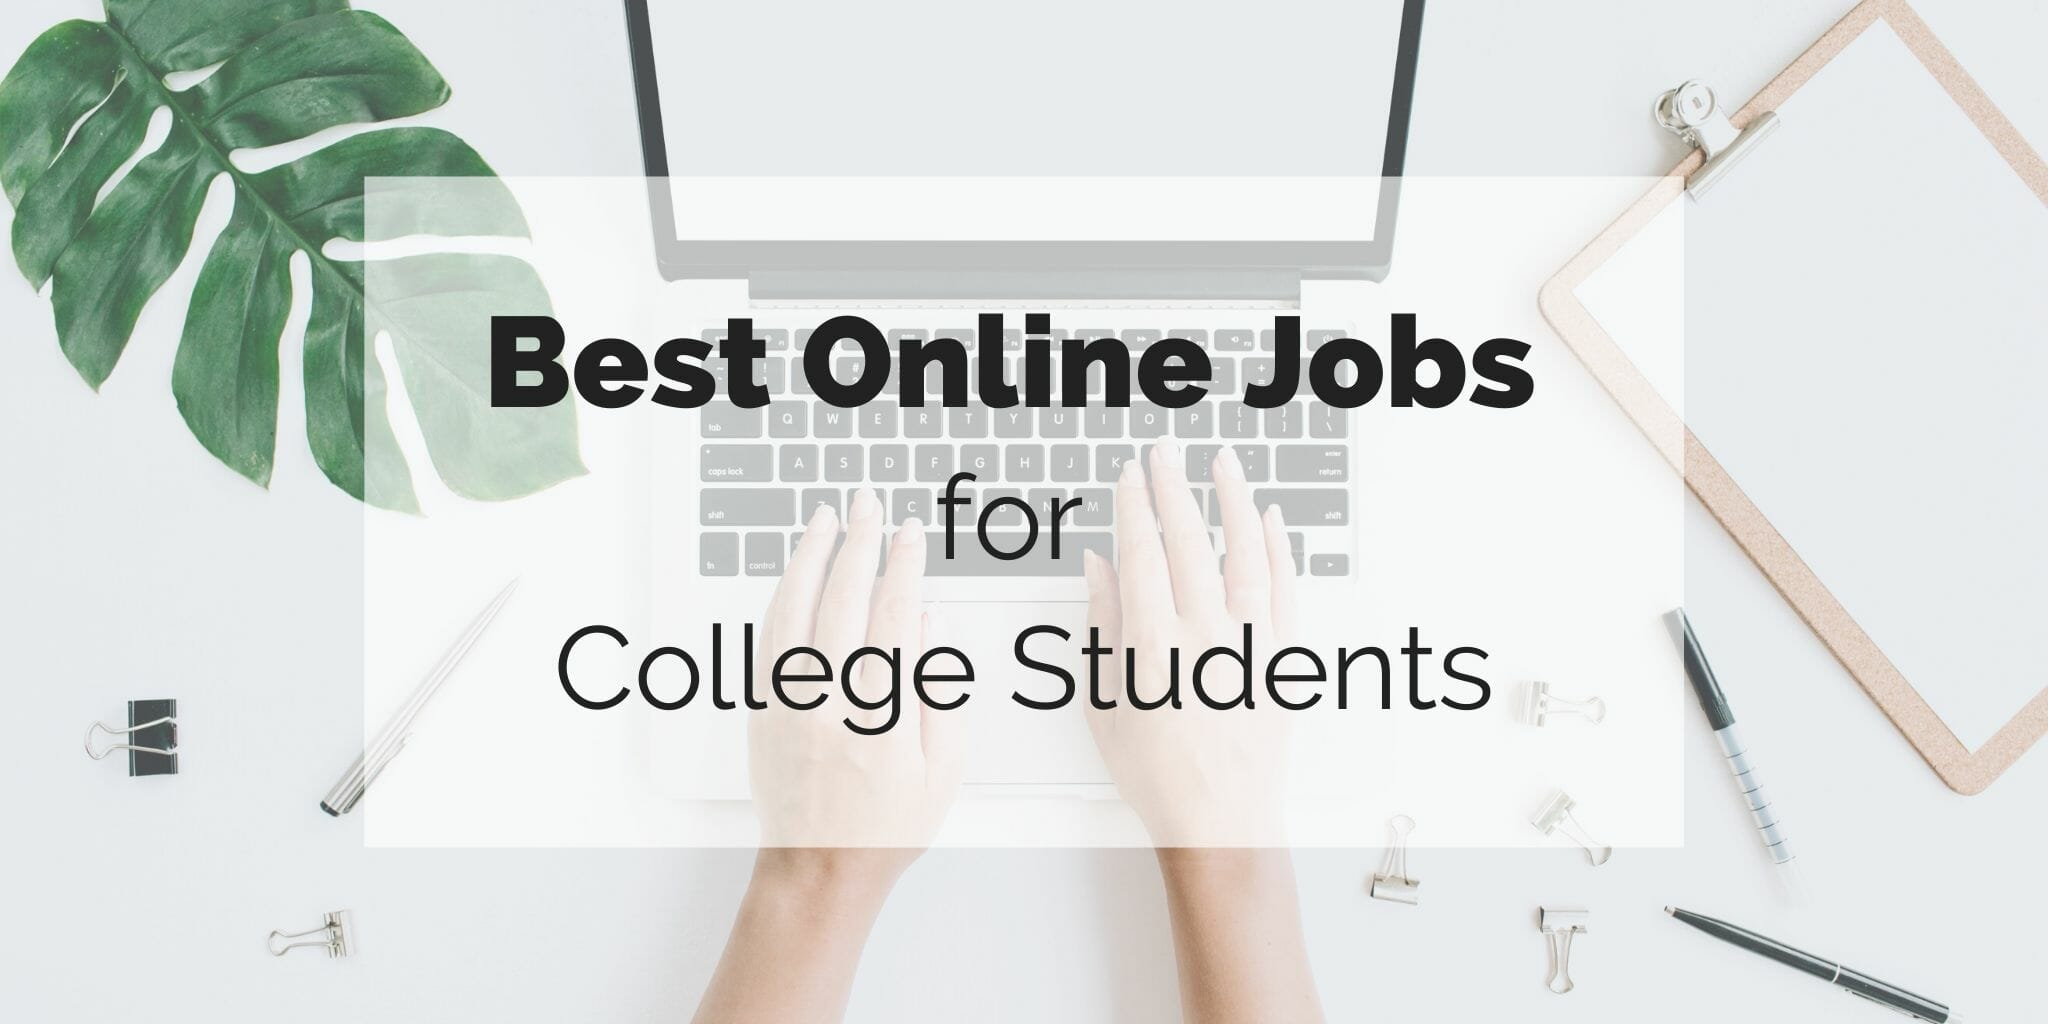 featured image for best online jobs for college students